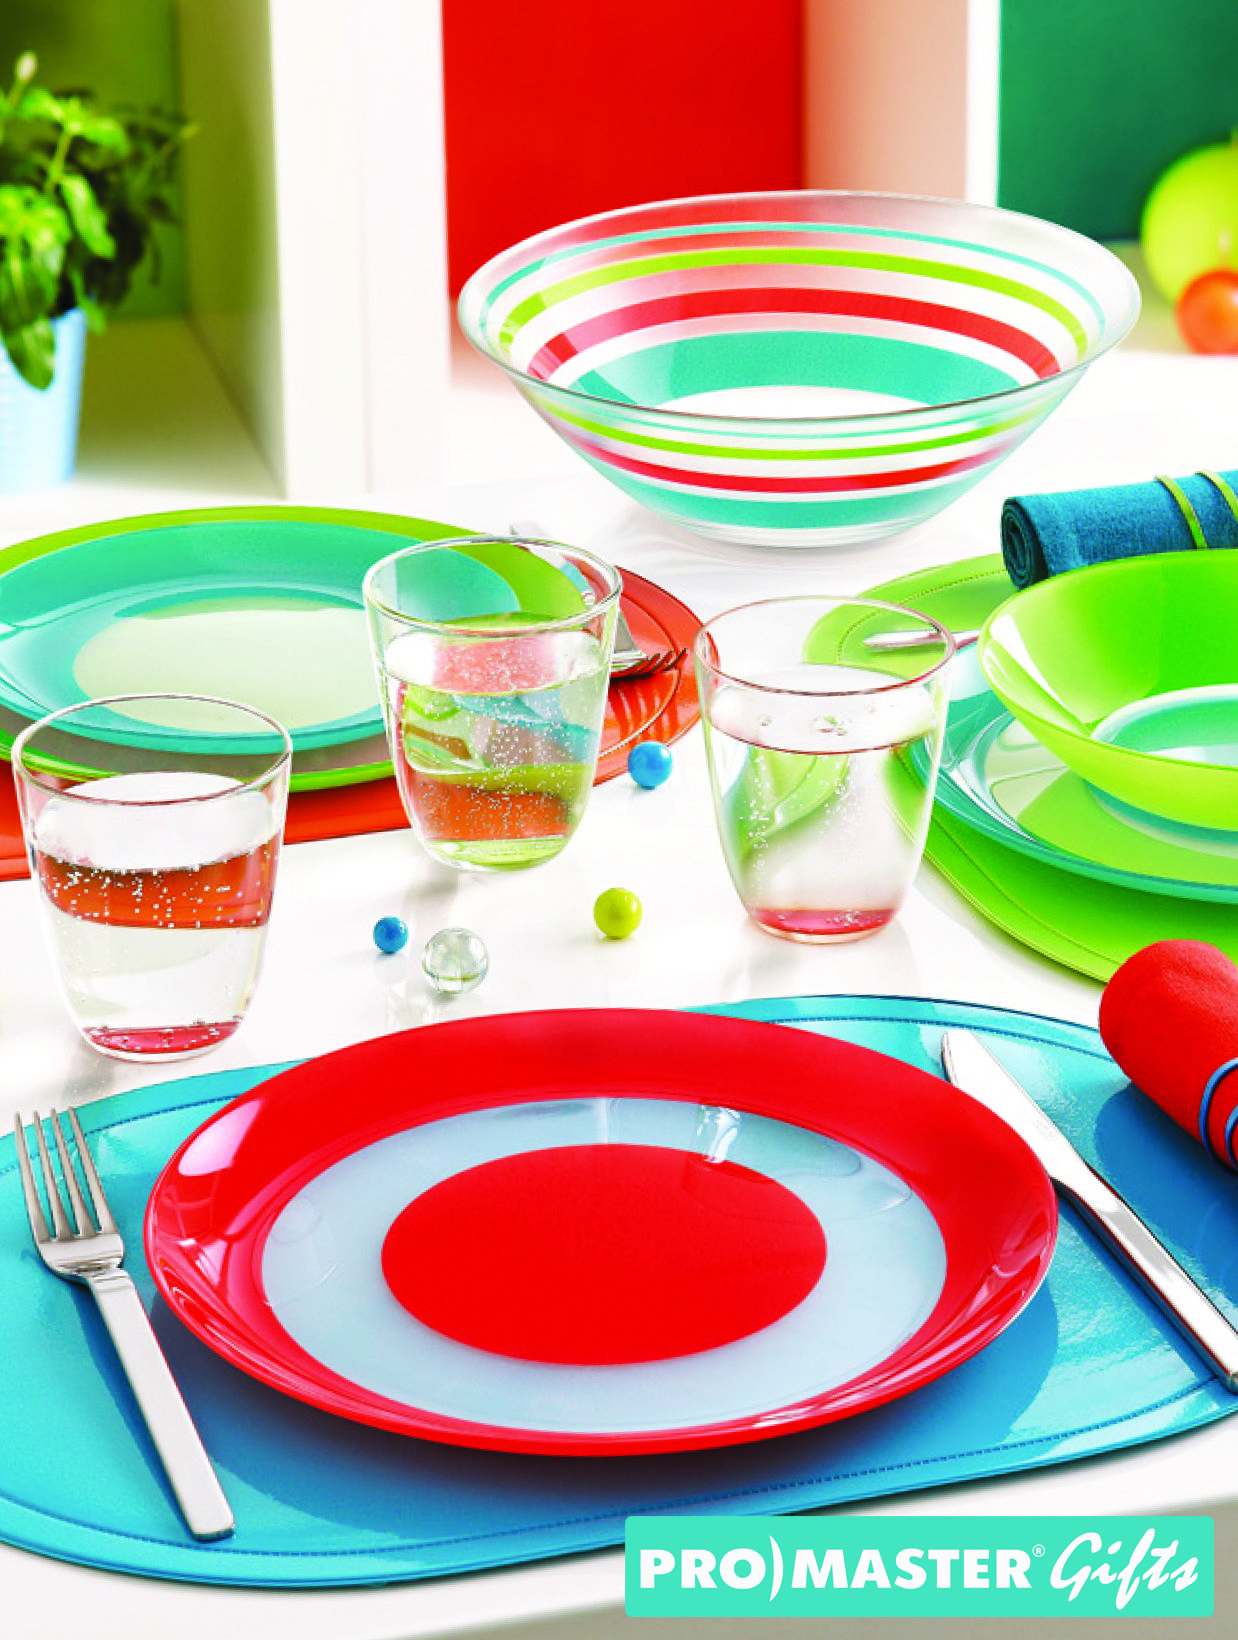 Luminarc J7670 19-Piece Simply Colors Glass Dinnerware Set Dishwasher safe Microwave  sc 1 st  Pinterest & Luminarc J7670 19-Piece Simply Colors Glass Dinnerware Set ...